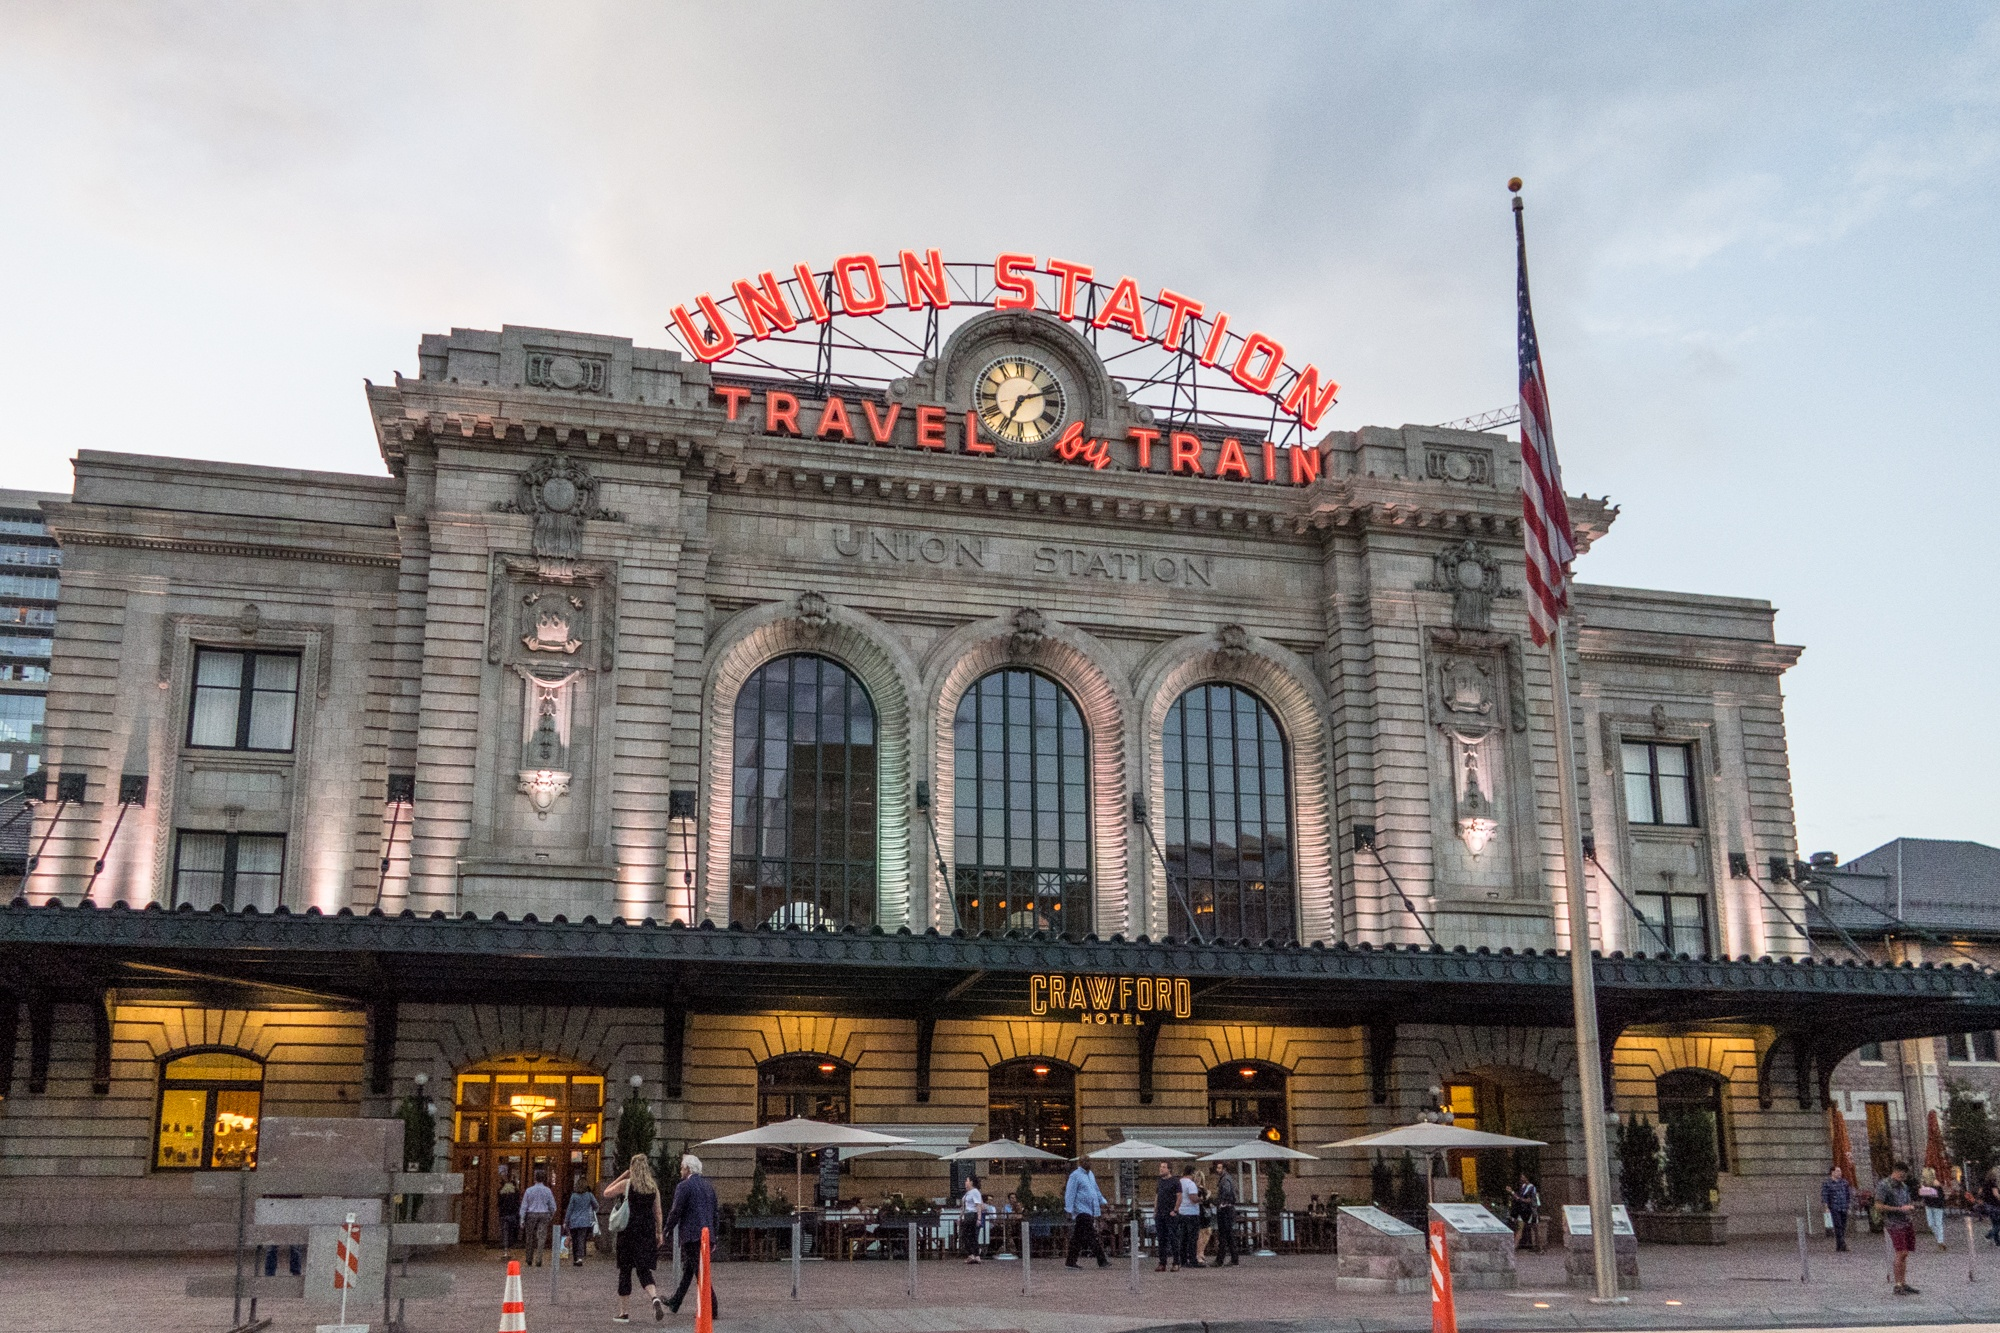 Visiting Union Station, one of many things to do in Denver